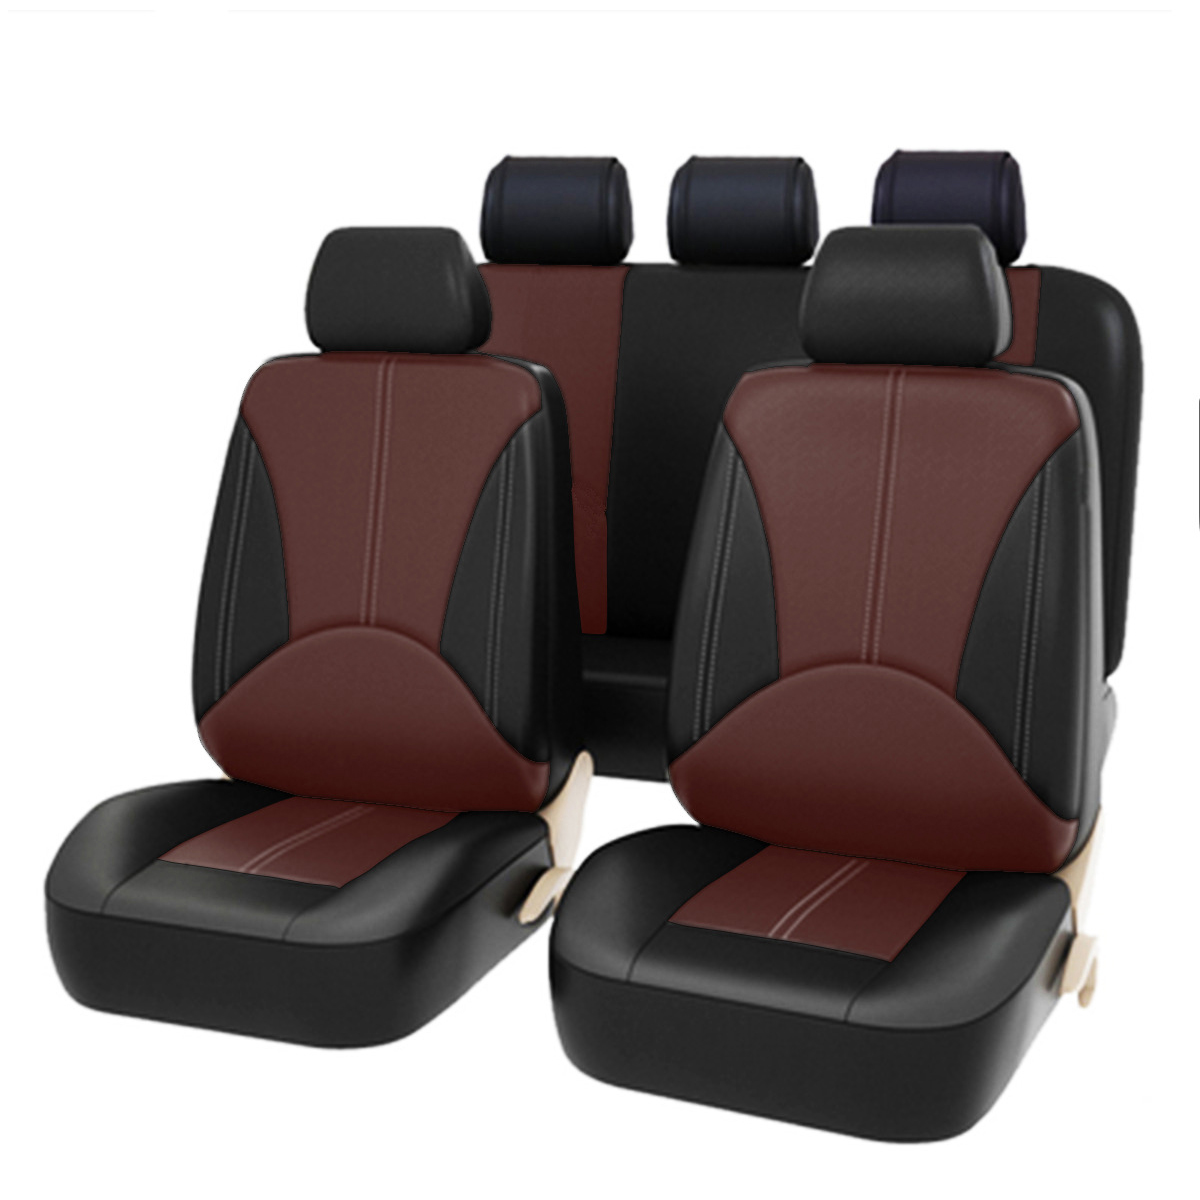 9PCS Universal Auto Seat Cover Front Back Head Rest Protector Wear-Resistant Covers Black PU Leather For 4 Season Car Seat Cover